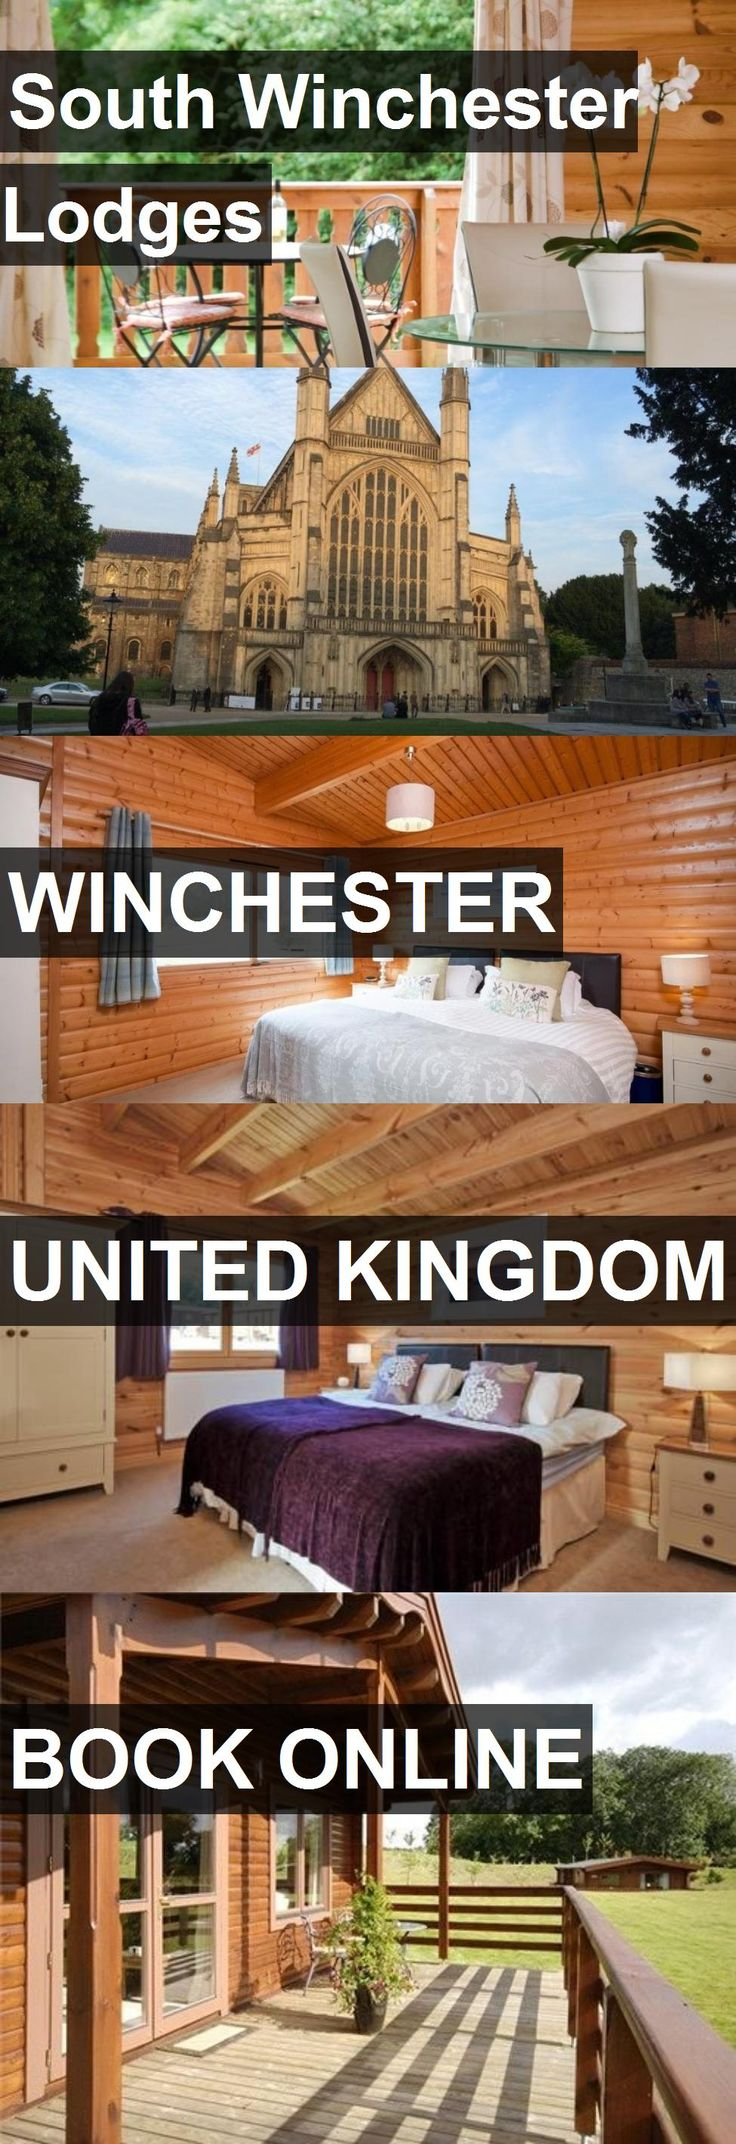 Hotel South Winchester Lodges in WINCHESTER, United Kingdom. For more information, photos, reviews and best prices please follow the link. #UnitedKingdom #WINCHESTER #hotel #travel #vacation